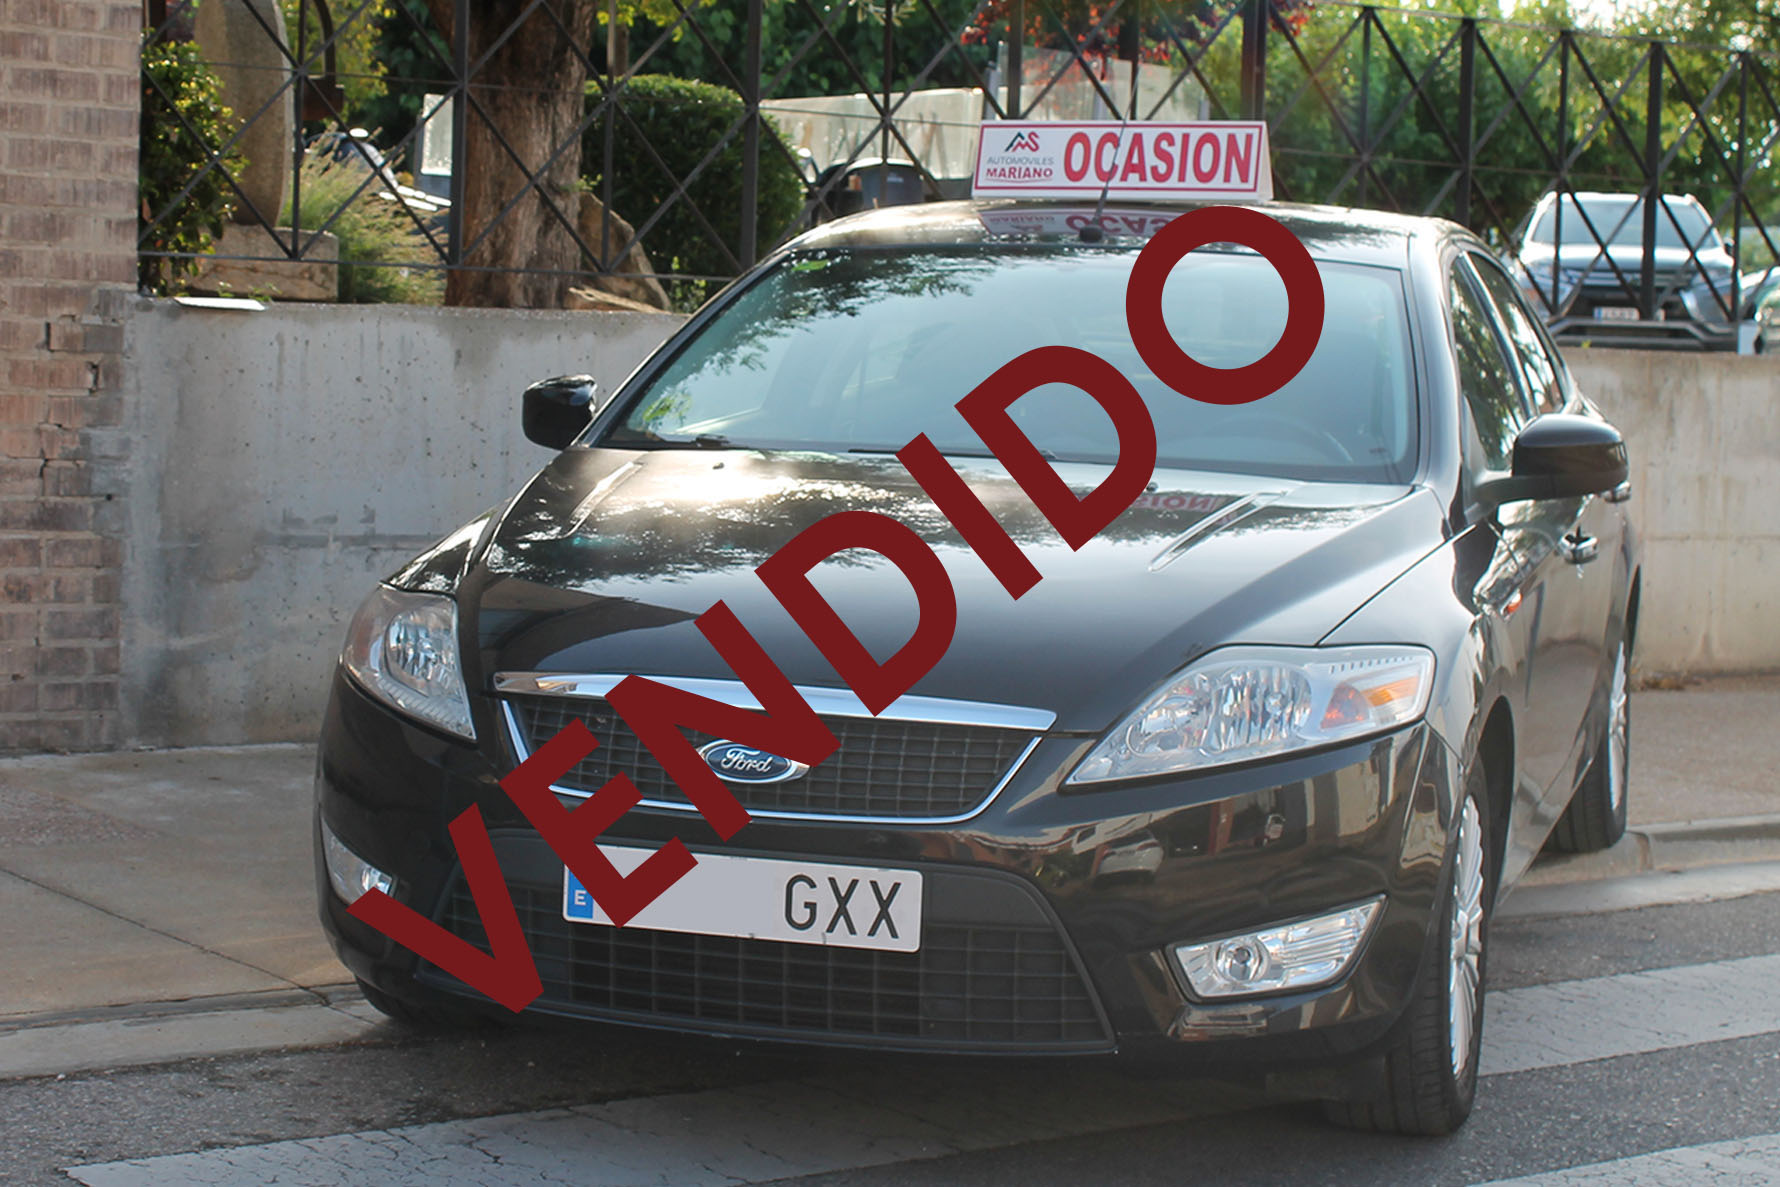 FORD MONDEO Econetic 1.8TDCi